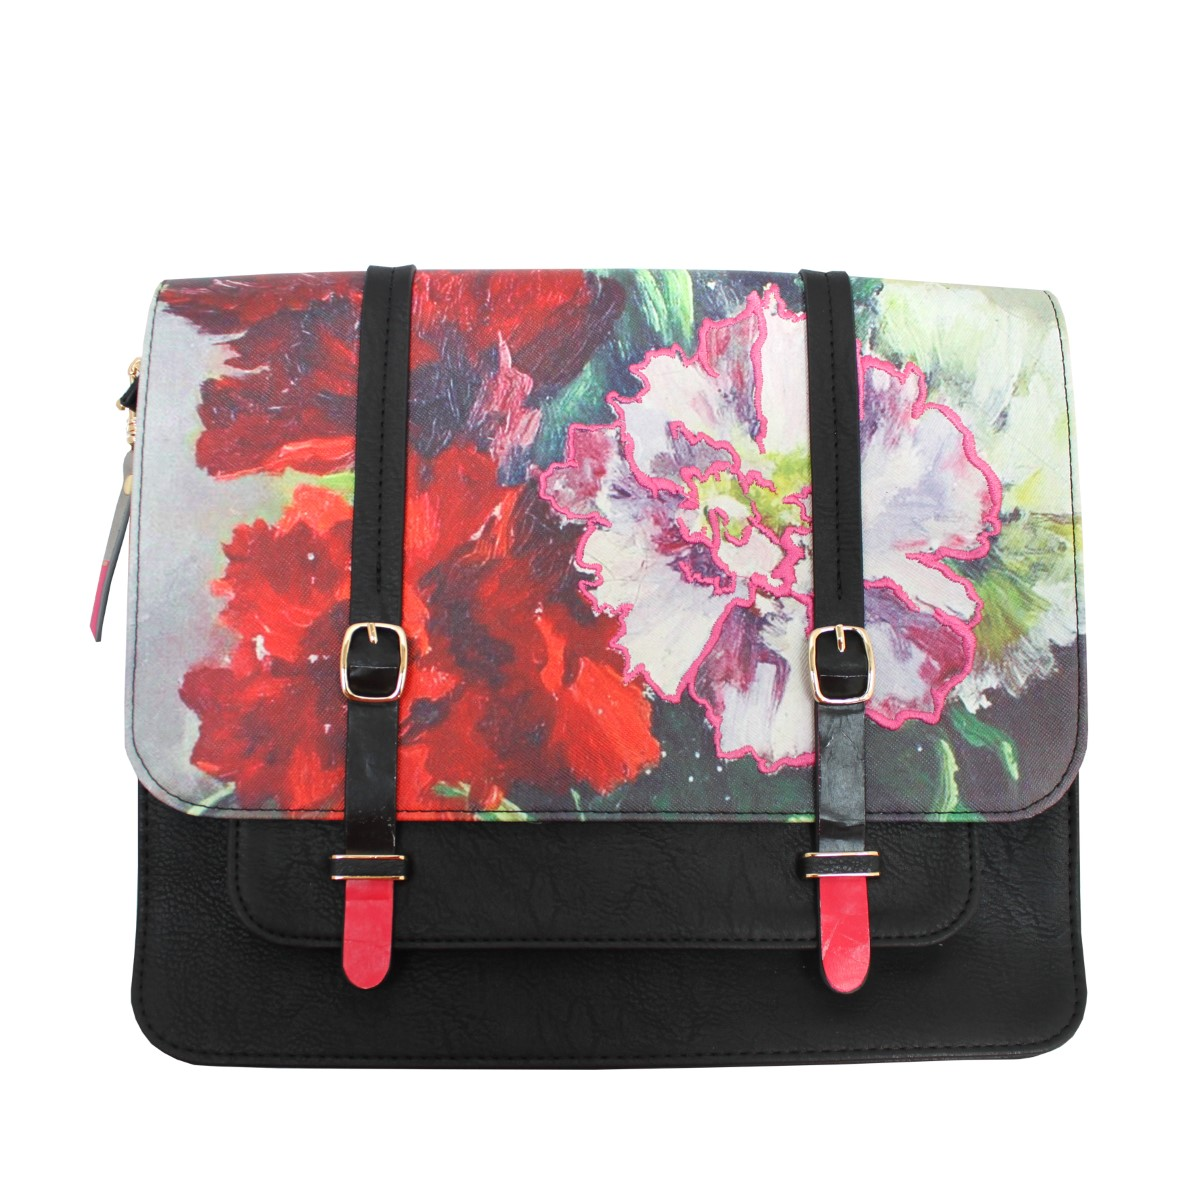 Disaster crossbody geanta ghiozdan Framed Red